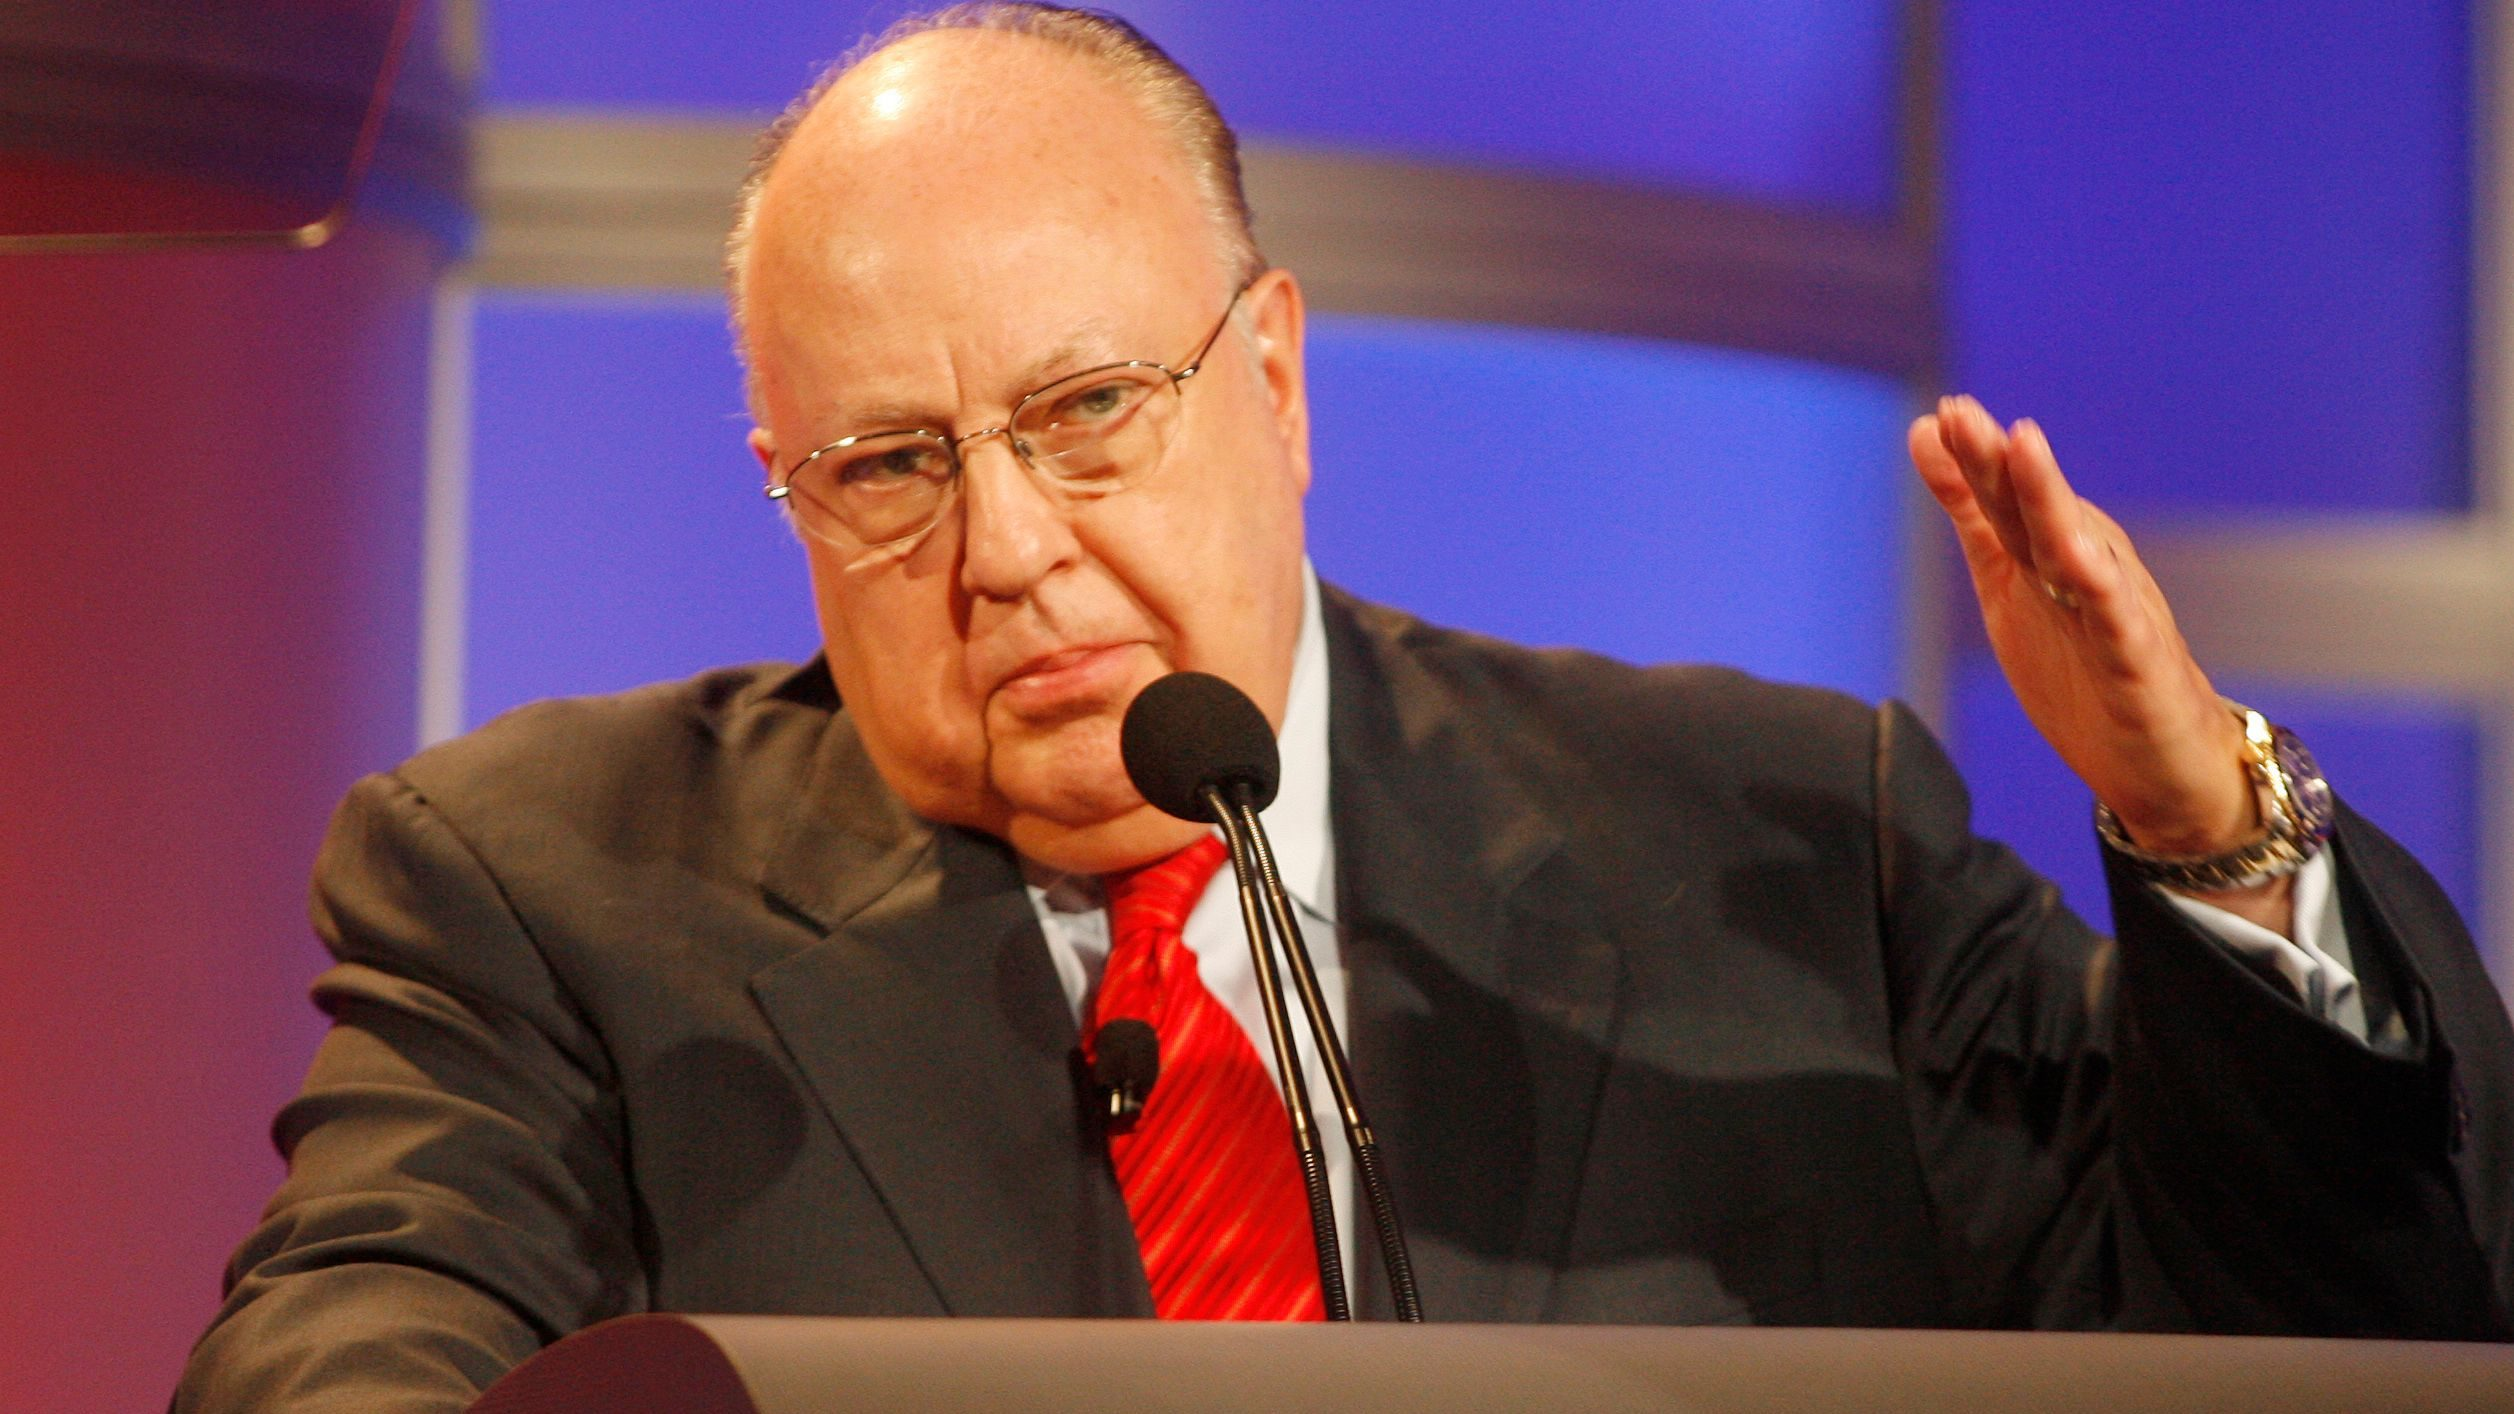 Roger Ailes, chairman and CEO of Fox News answers questions during panel discussion at Television Critics Association summer press tour in Pasadena